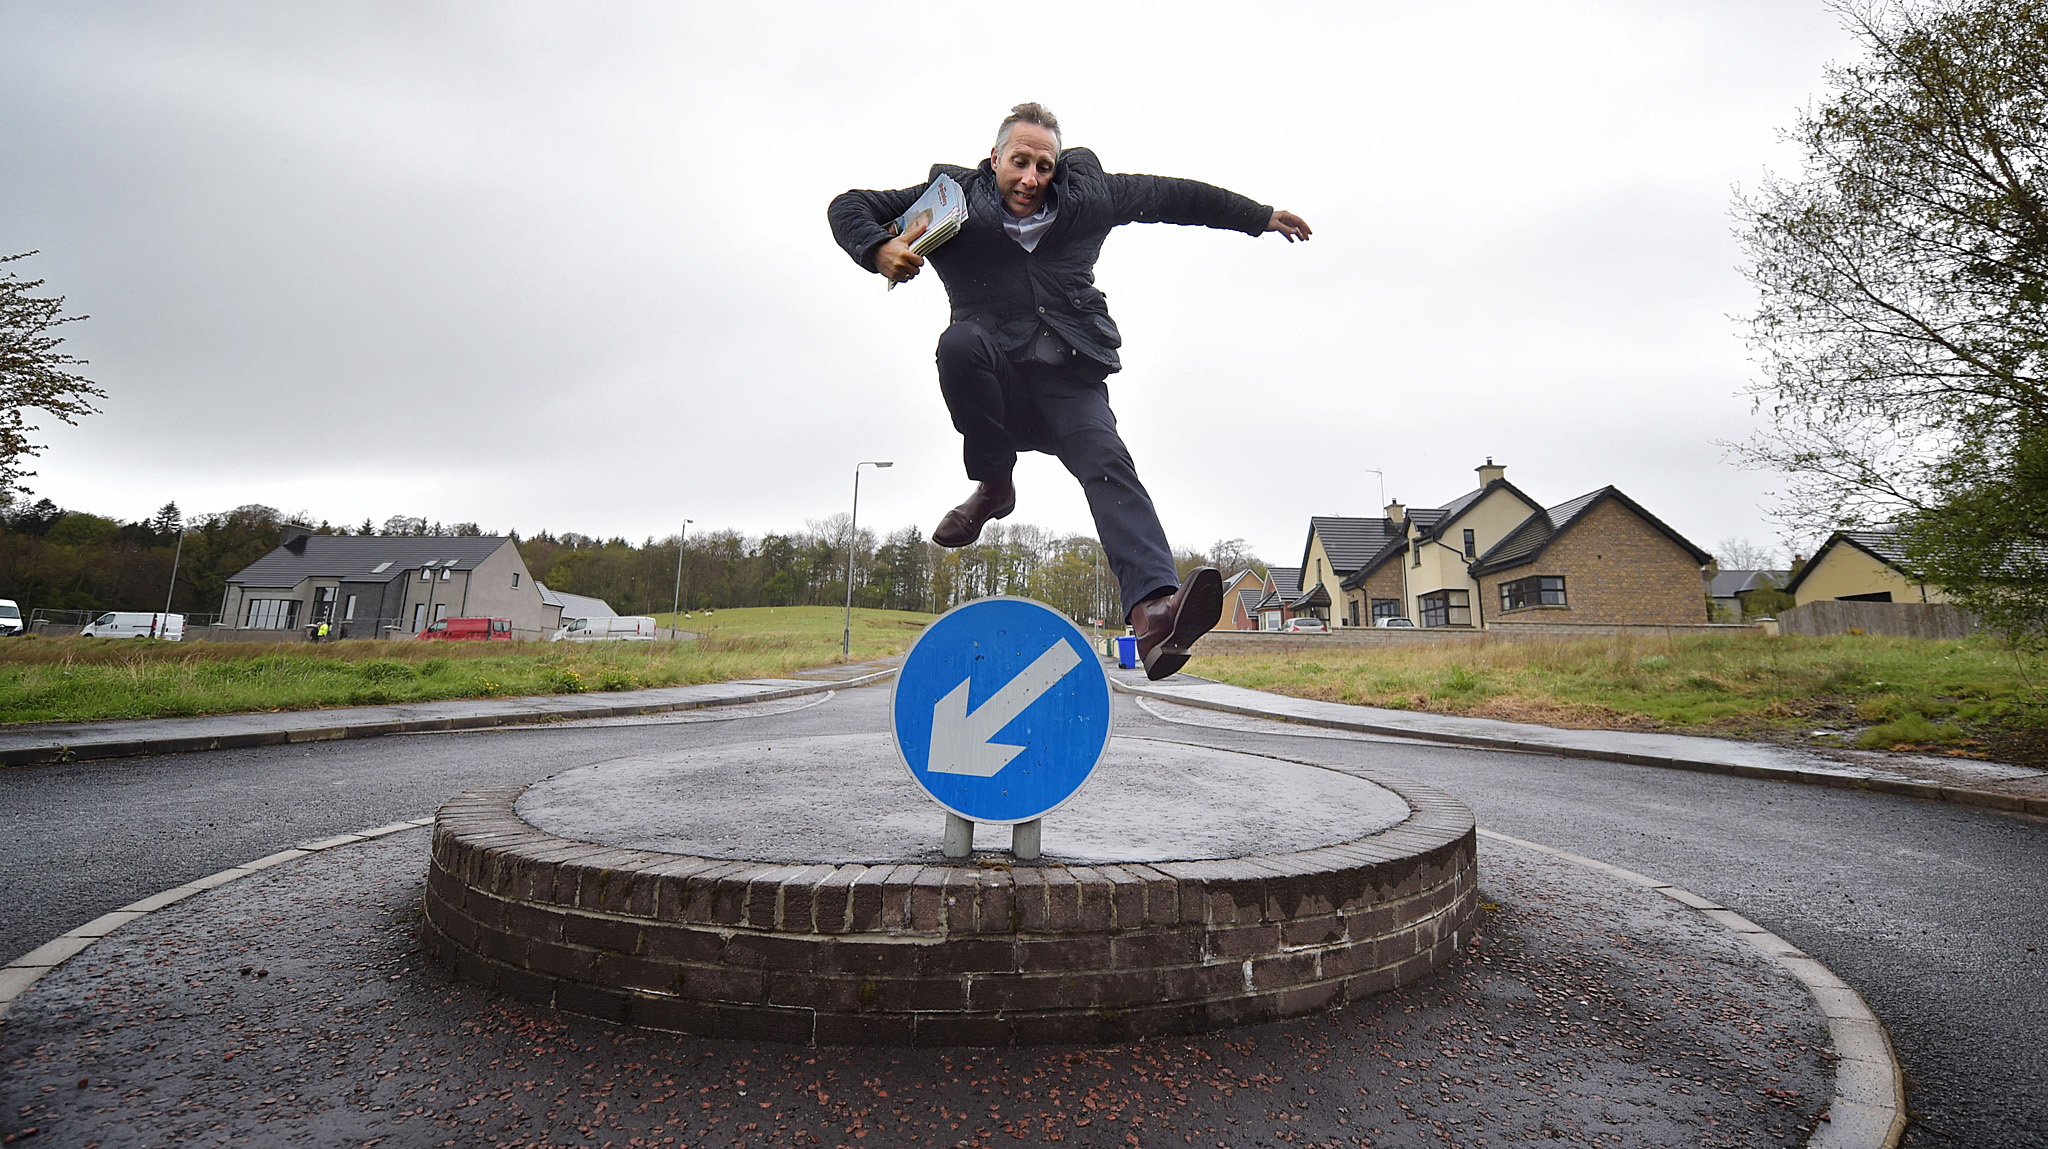 ut On The Campaign Trail With Ian Paisley Junior...BALLYMONEY, NORTHERN IRELAND - APRIL 29:  Democratic Unionist Party Westminster candidate Ian Paisley Jr jumps over a roundabout sign whilst out canvassing on April 29, 2015 in Ballymoney, Northern Ireland. Son of the late Ian Paisley, founder of the DUP and former Northern Ireland First Minister, Paisley Jr successfully ran to succeed his father as the Westminster MP for North Antrim in the 2010 UK general election, winning 46.4% of the vote share. Political observers have suggested that the DUP, with a probable 8-10 Westminster seats could have an influential role to play if the General Election results in a hung parliment. The DUP has said that they are open to working with either the Conservatives or the Labour party.  (Photo by Charles McQuillan/Getty Images)